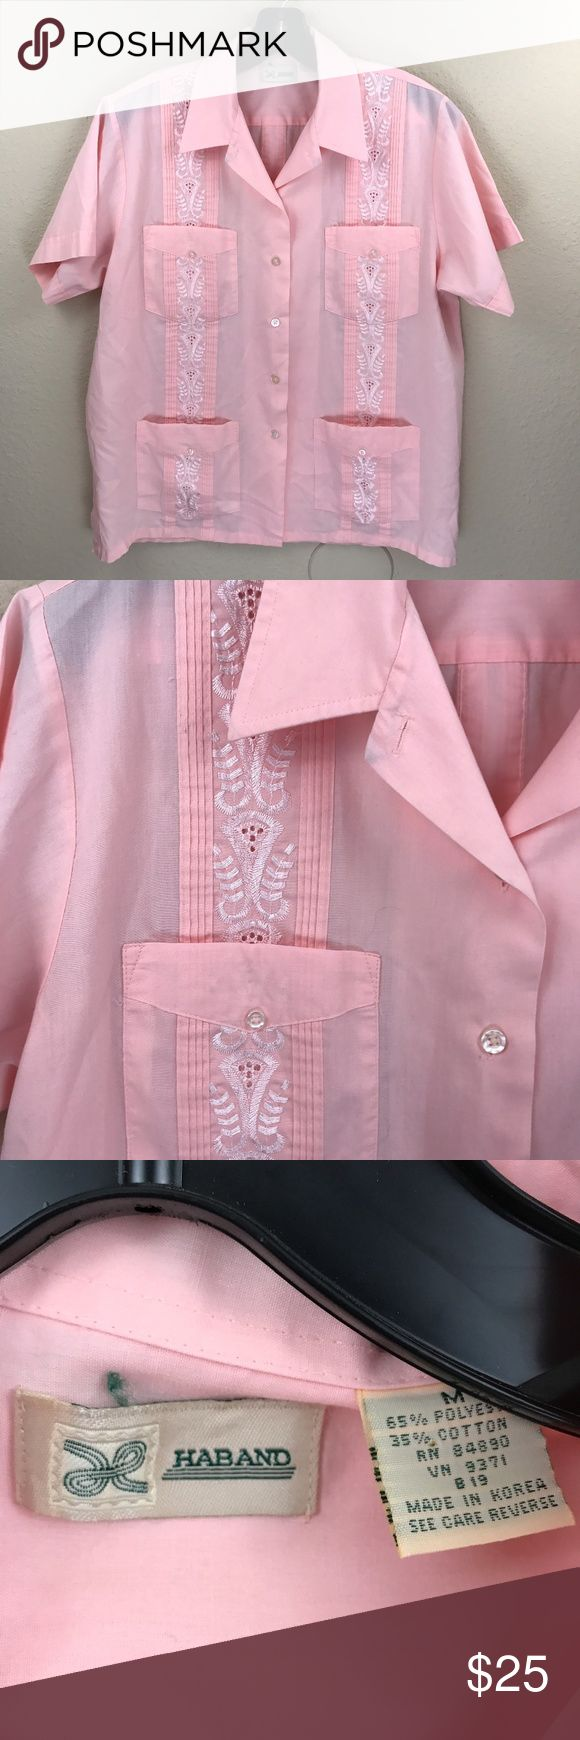 Haband Pink Guayabera Size M In great condition! Perfect for enjoying the rest of your summer adventures. Great for a beach wedding, traveling, or staying cool while looking good! Vintage Shirts Casual Button Down Shirts